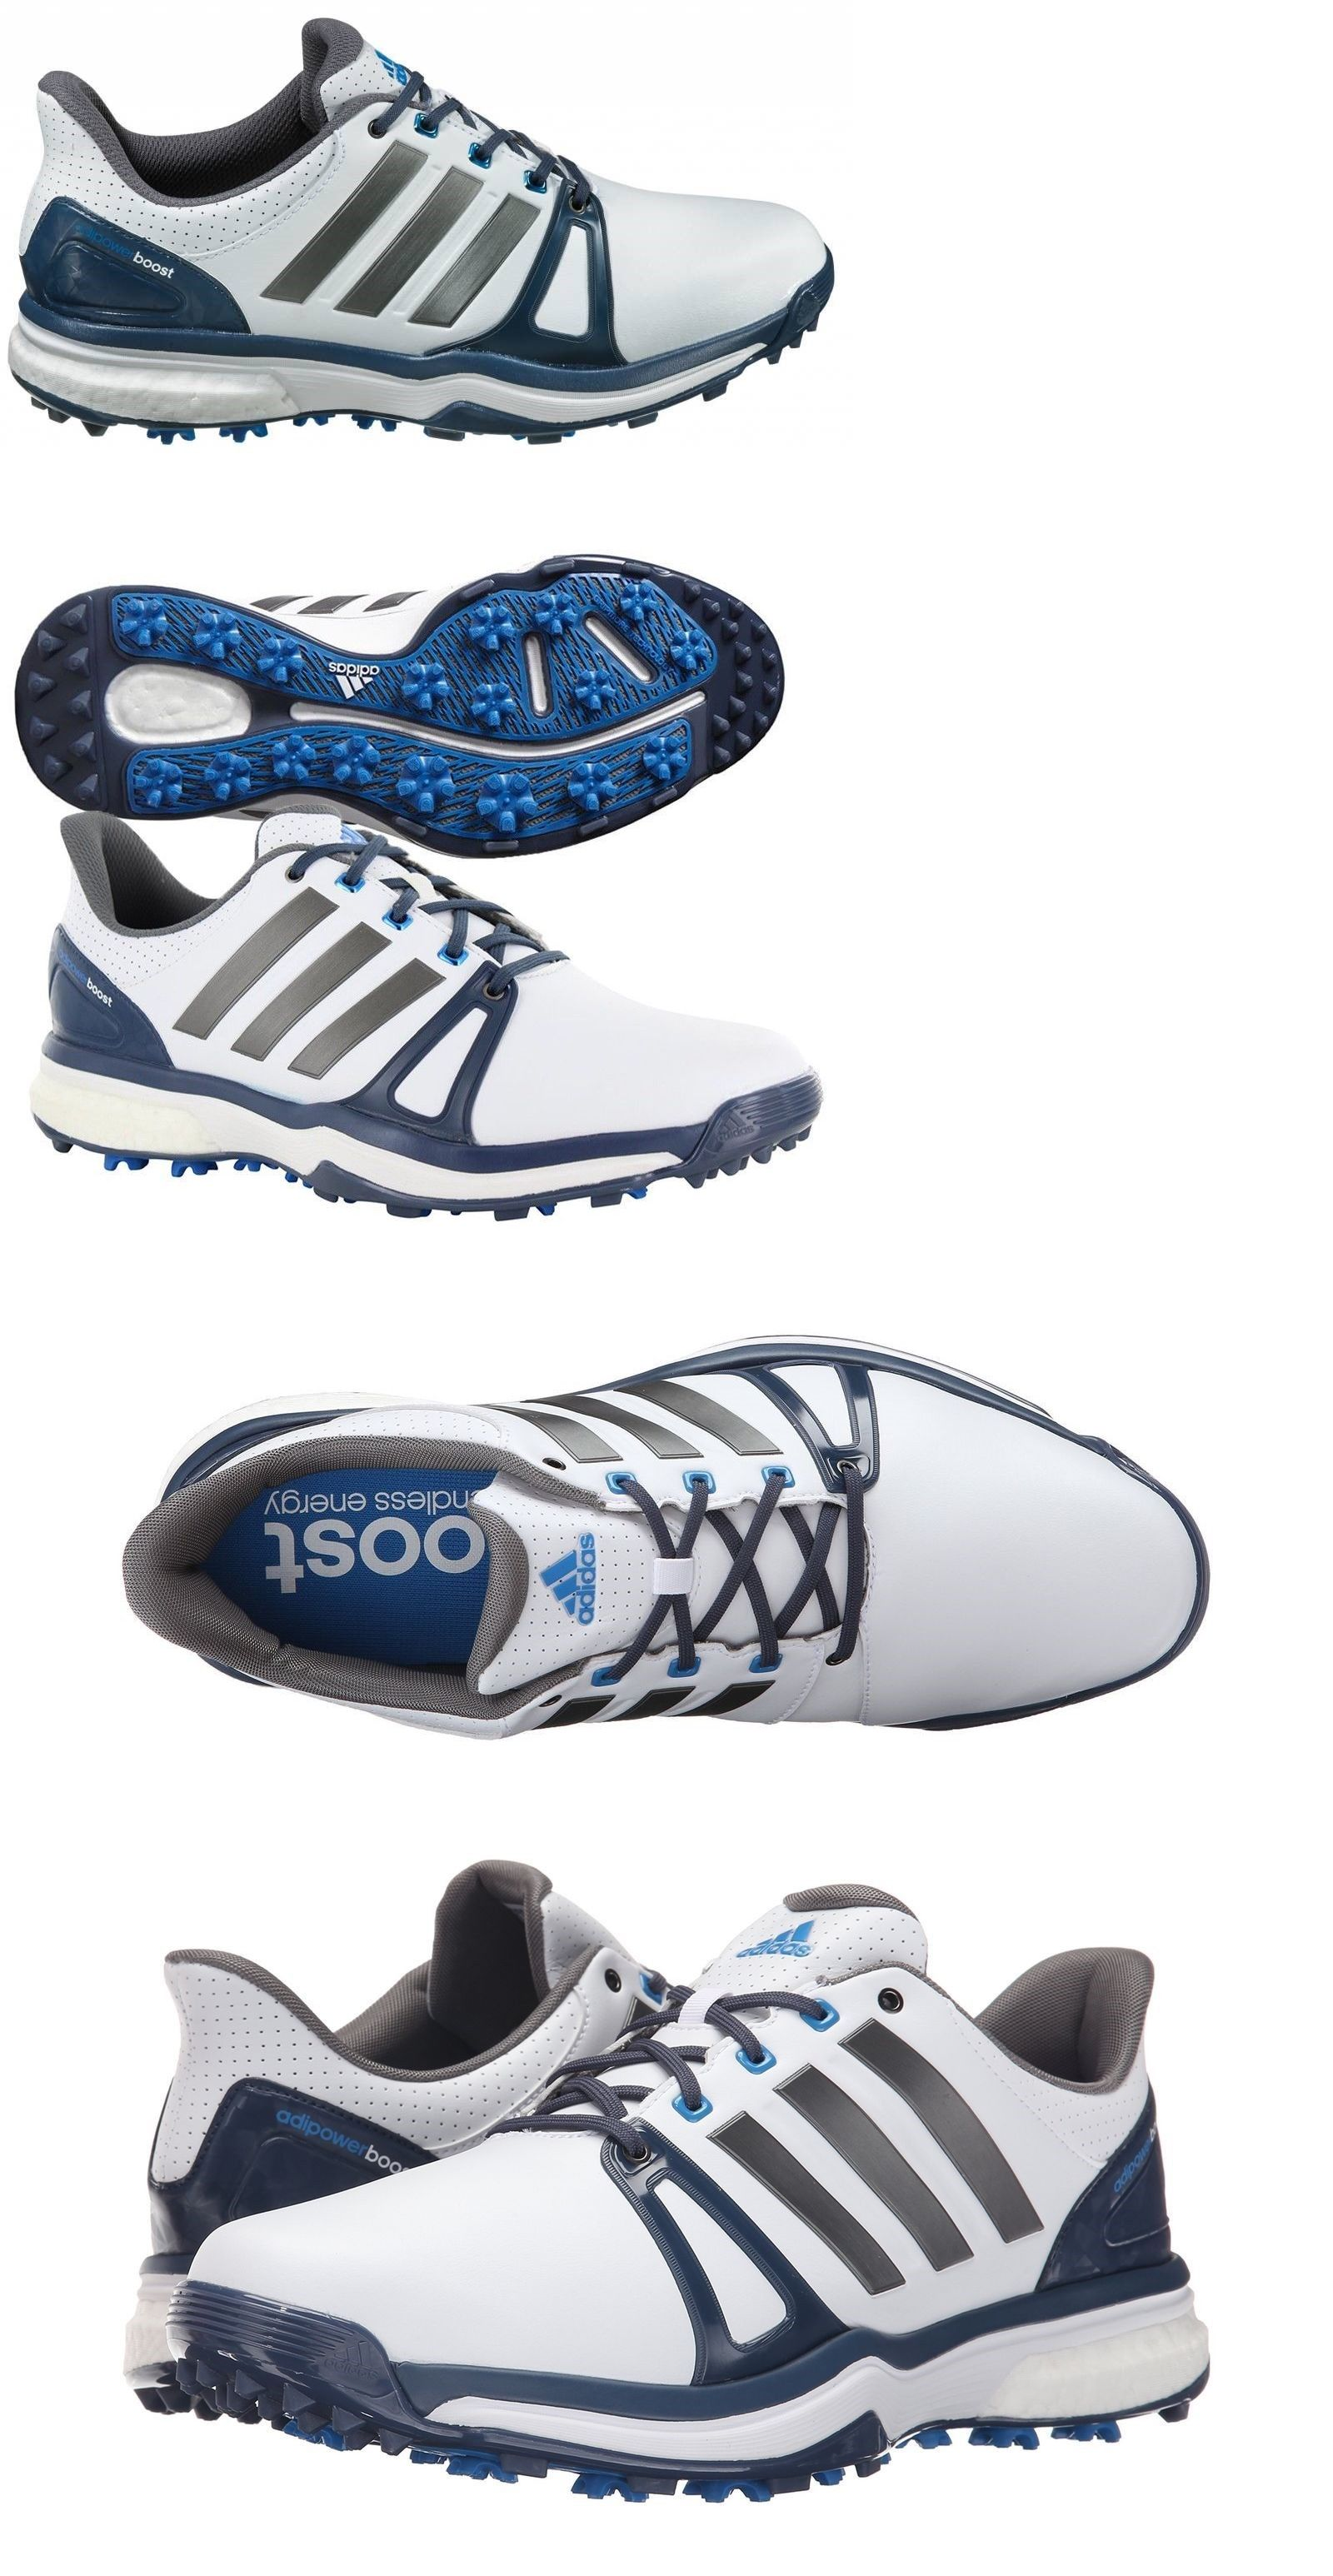 85264122687c Golf Shoes 181136  New Adidas Adipower Boost 2 Mens Golf Shoes White Silver  Blue -